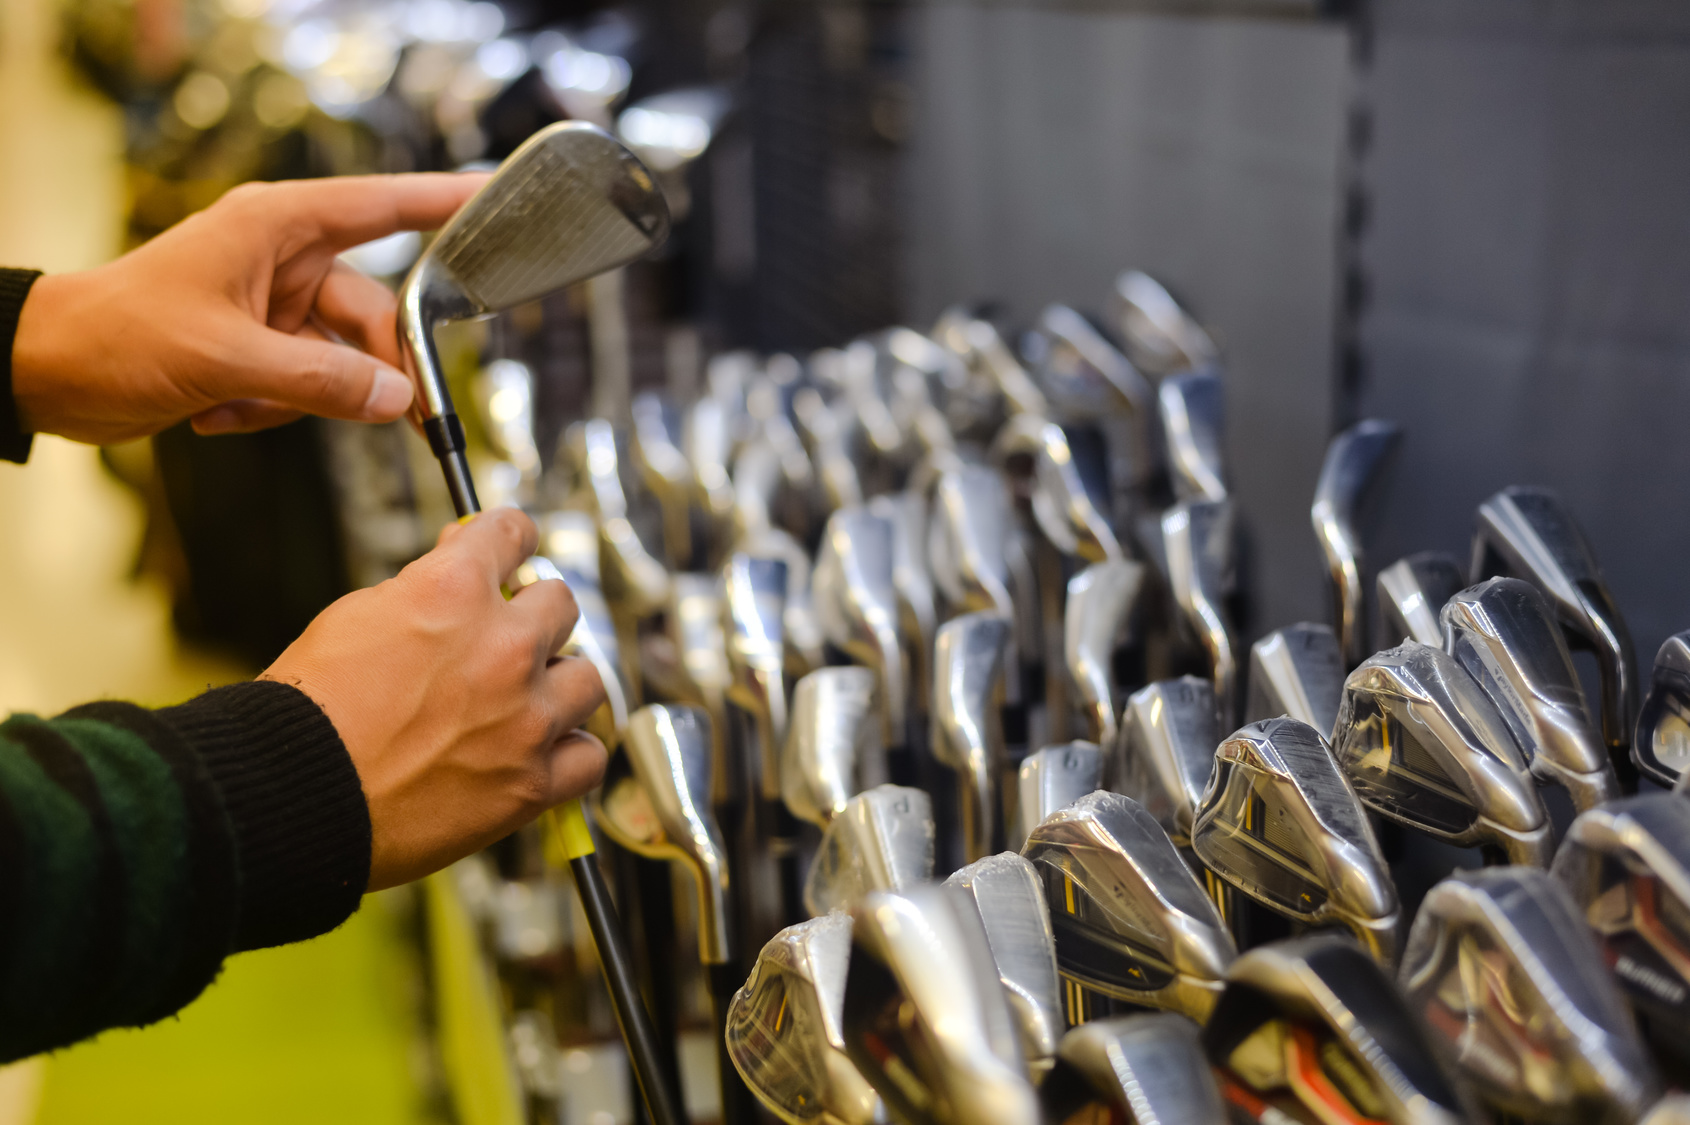 Storing Your Golf Clubs The Right Way